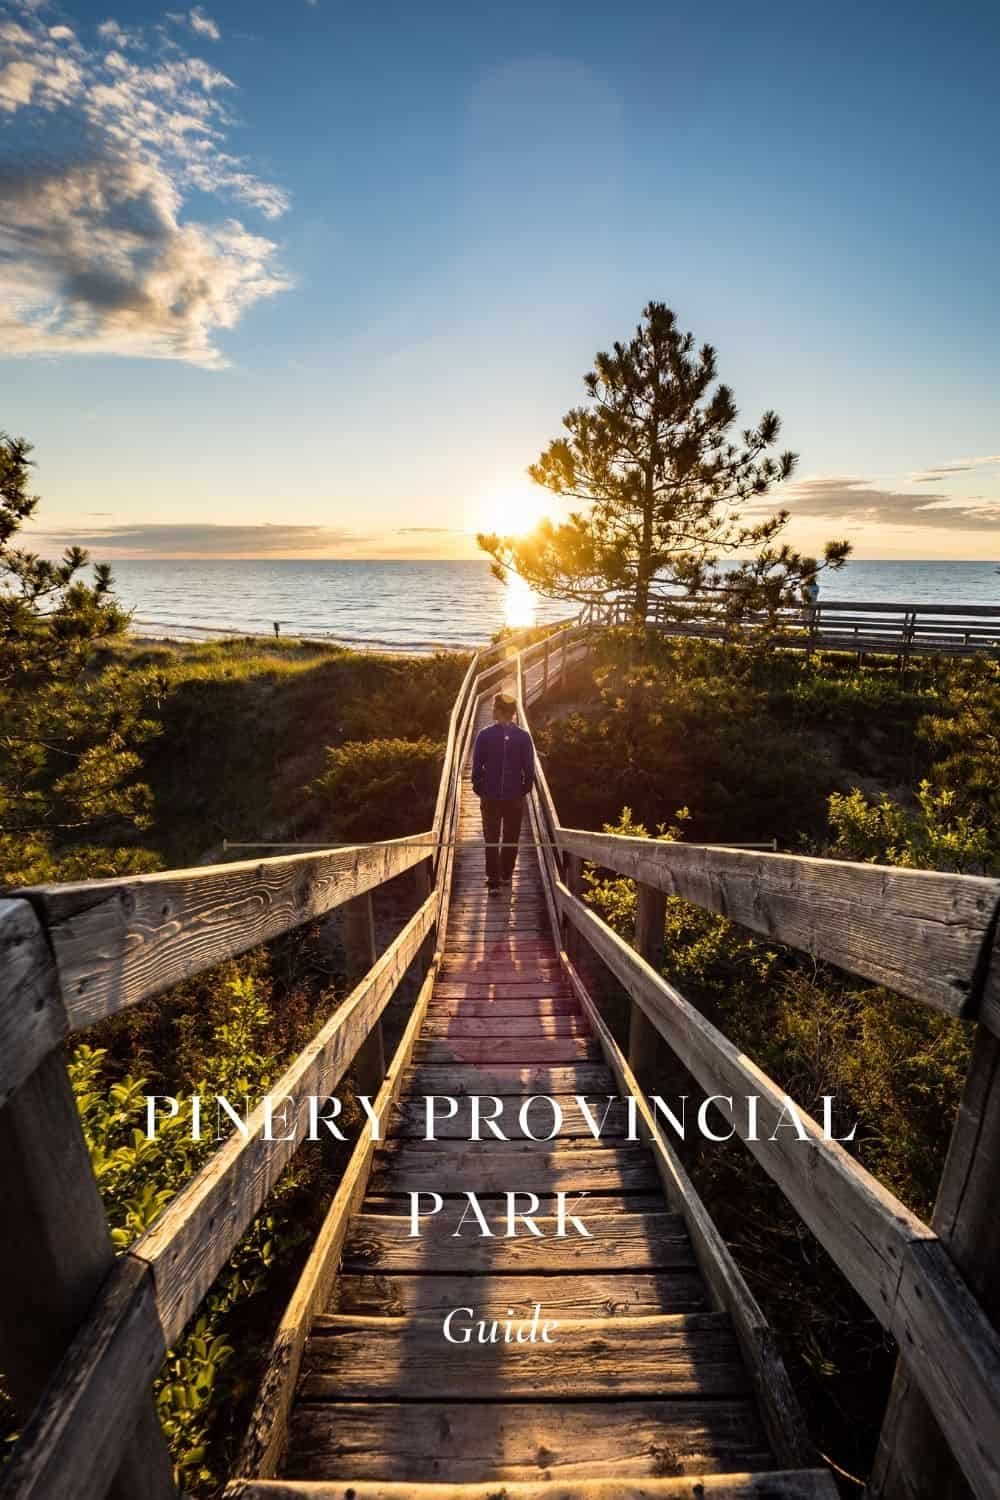 Pinery Provincial Park Guide and Review